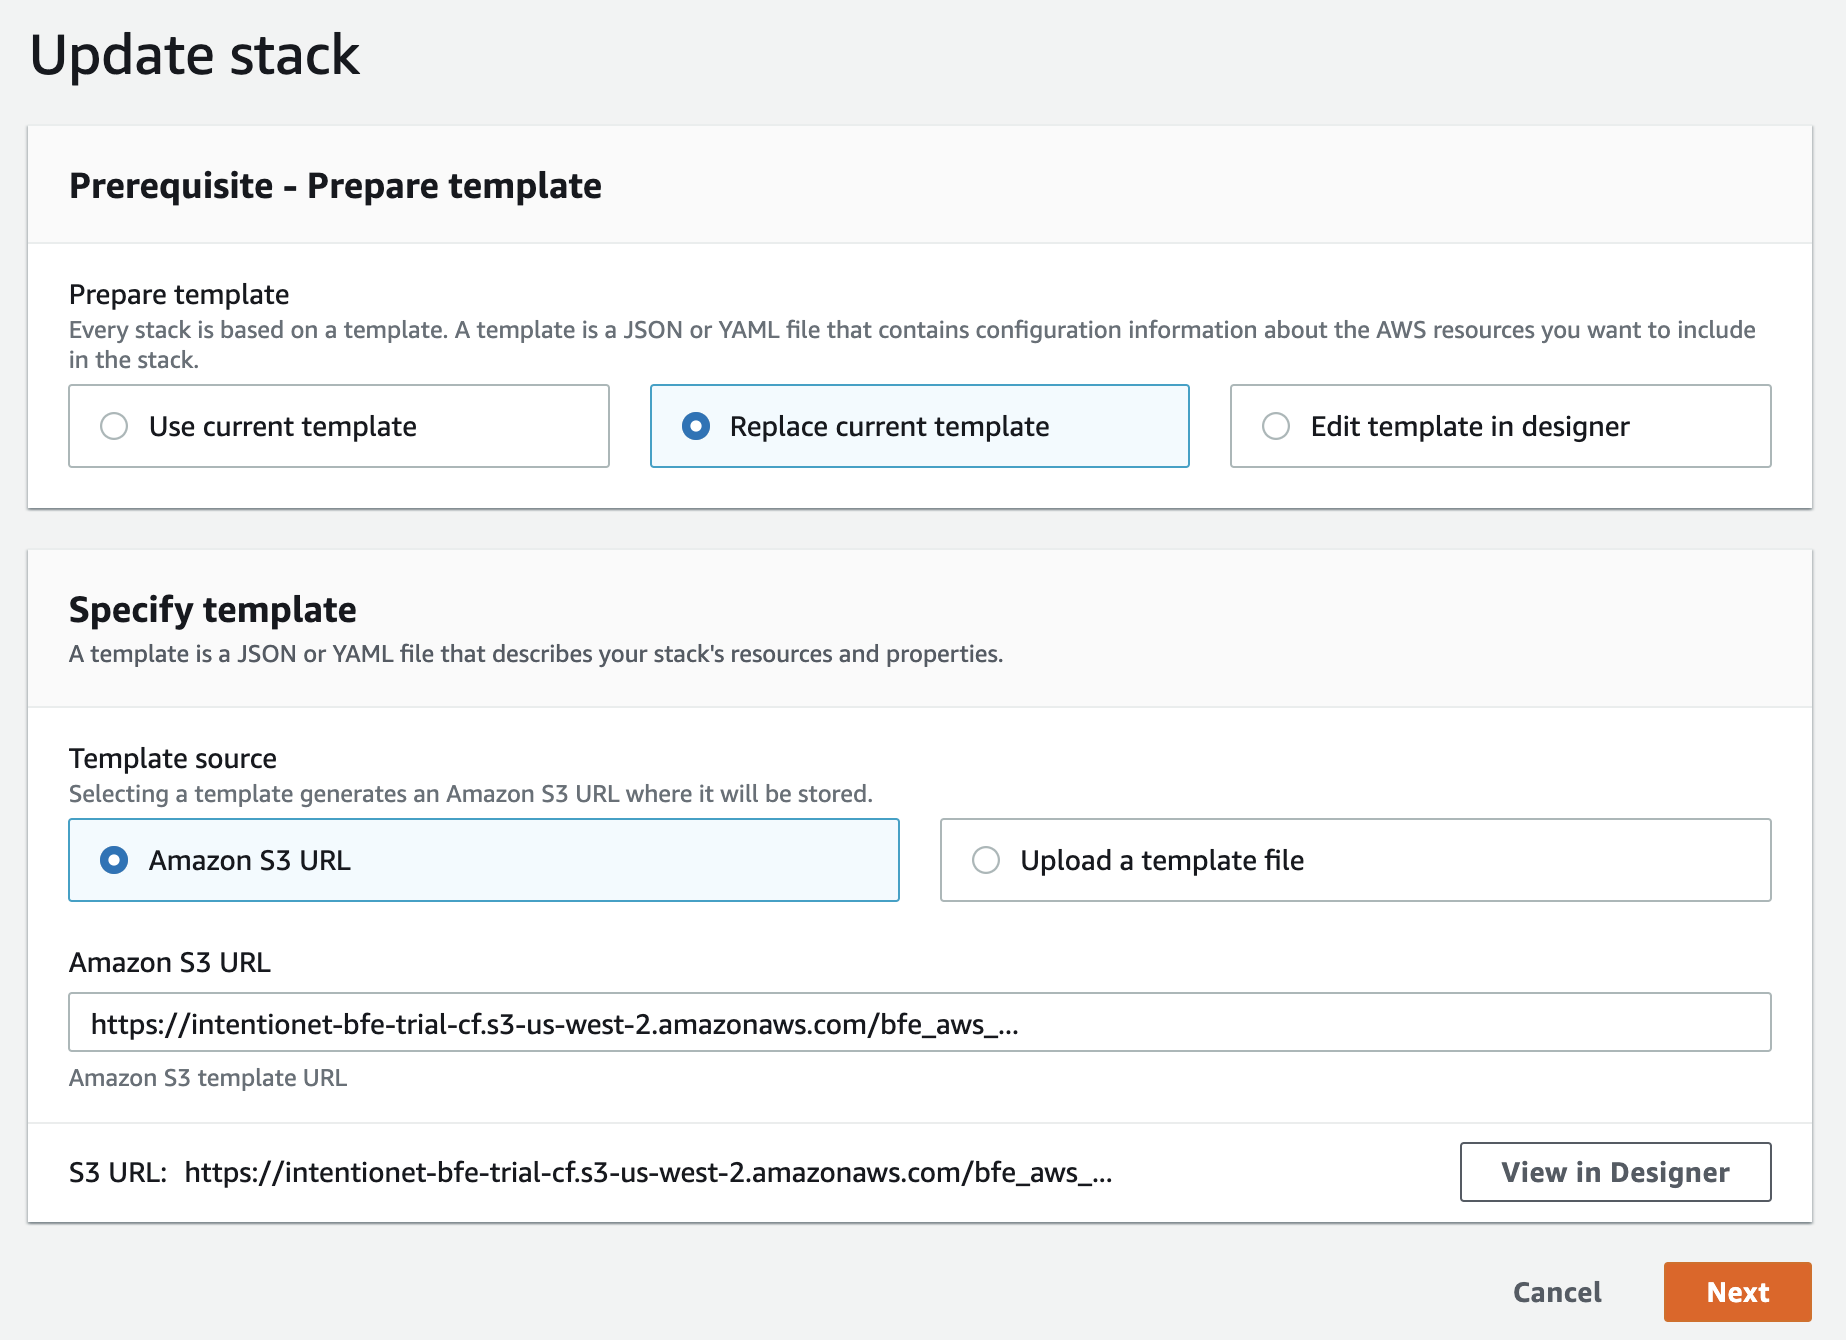 Update stack page with updated URL